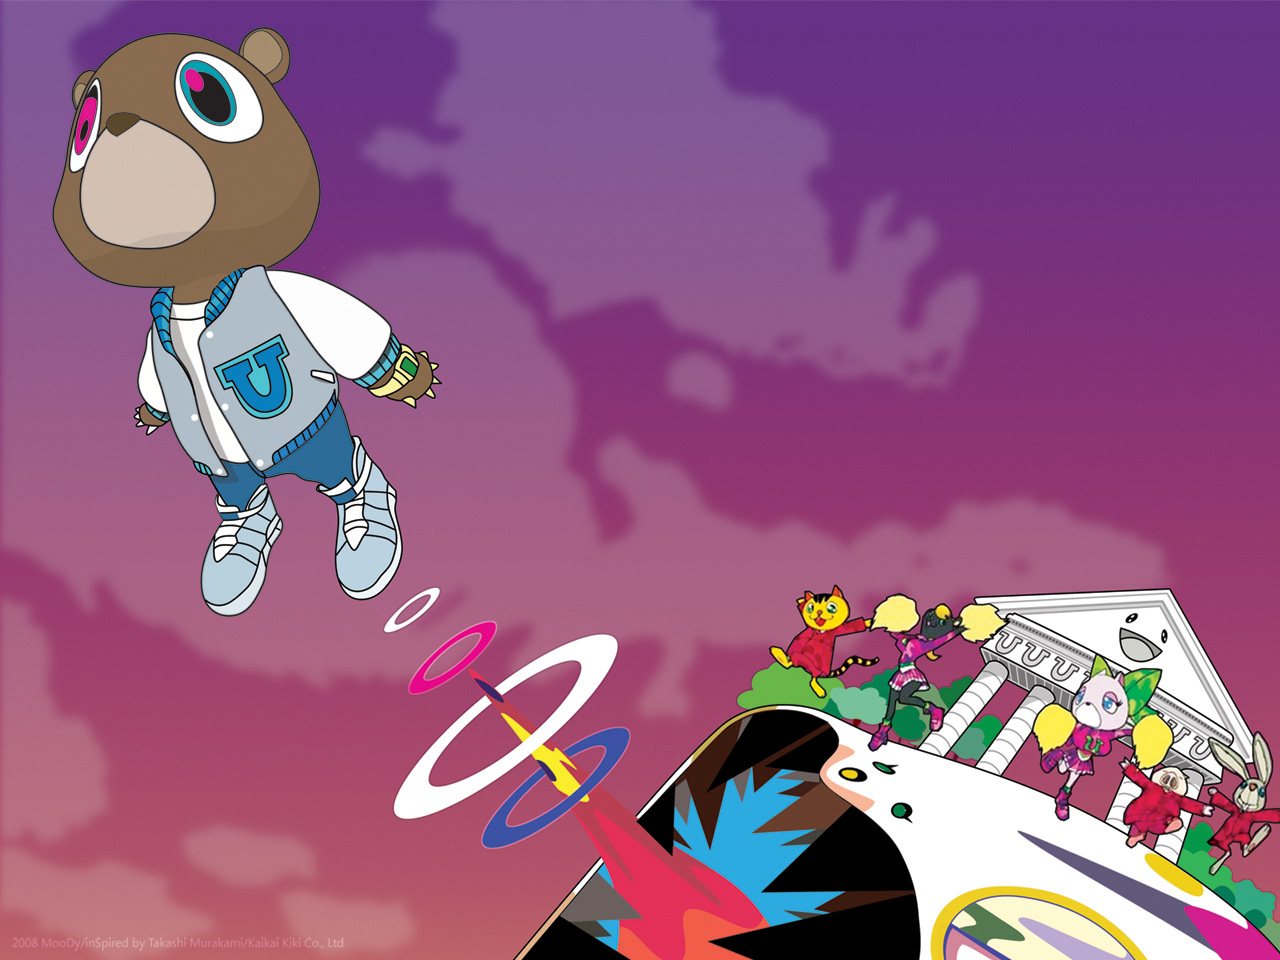 Kanye West Bear Wallpaper 2